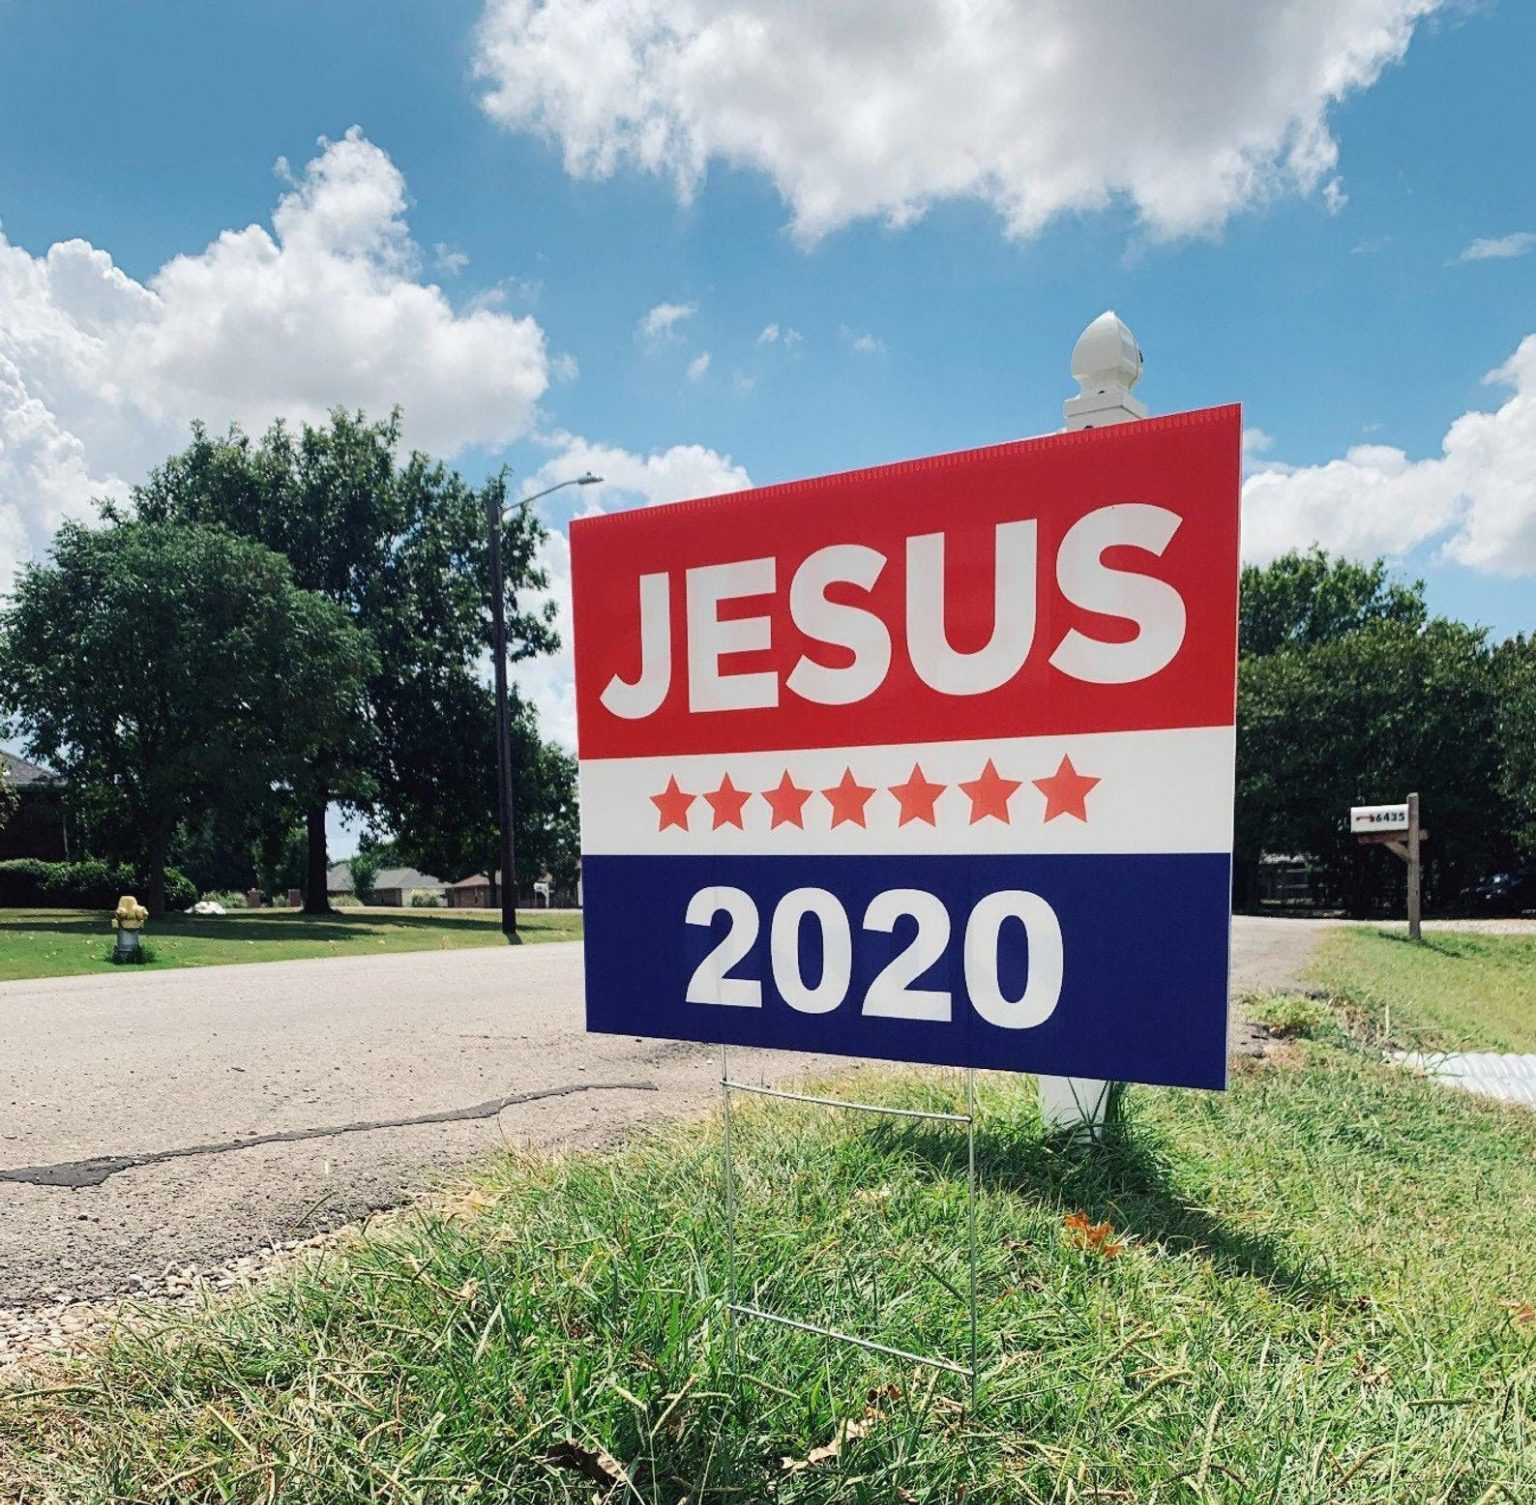 Jesus 2020: Why Evangelicals Are Voting for Trump   The American Spectator   USA News and PoliticsThe American Spectator   USA News and Politics